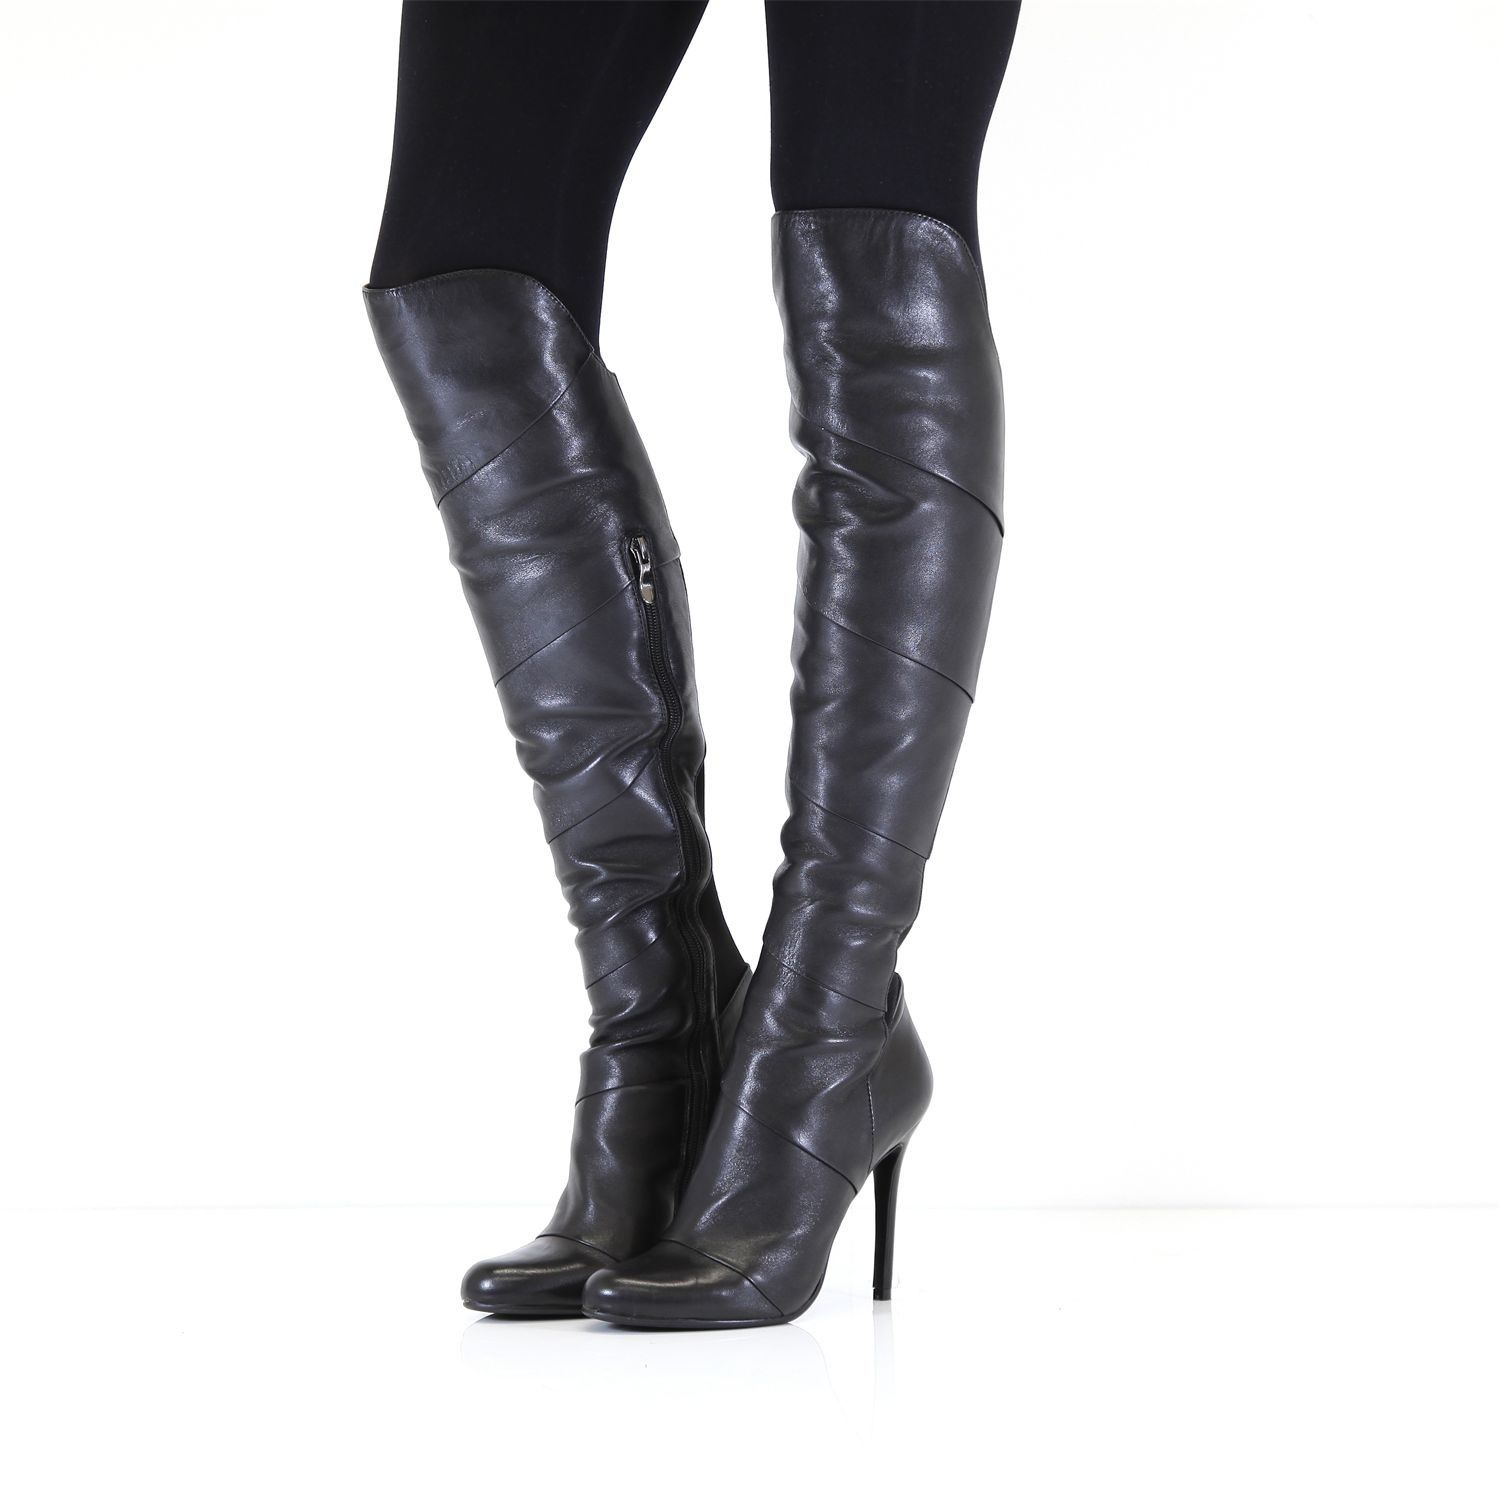 Women's Vancouver Black #Leather #Boots On modainpelle.com - http://bit.ly/1NfuExe